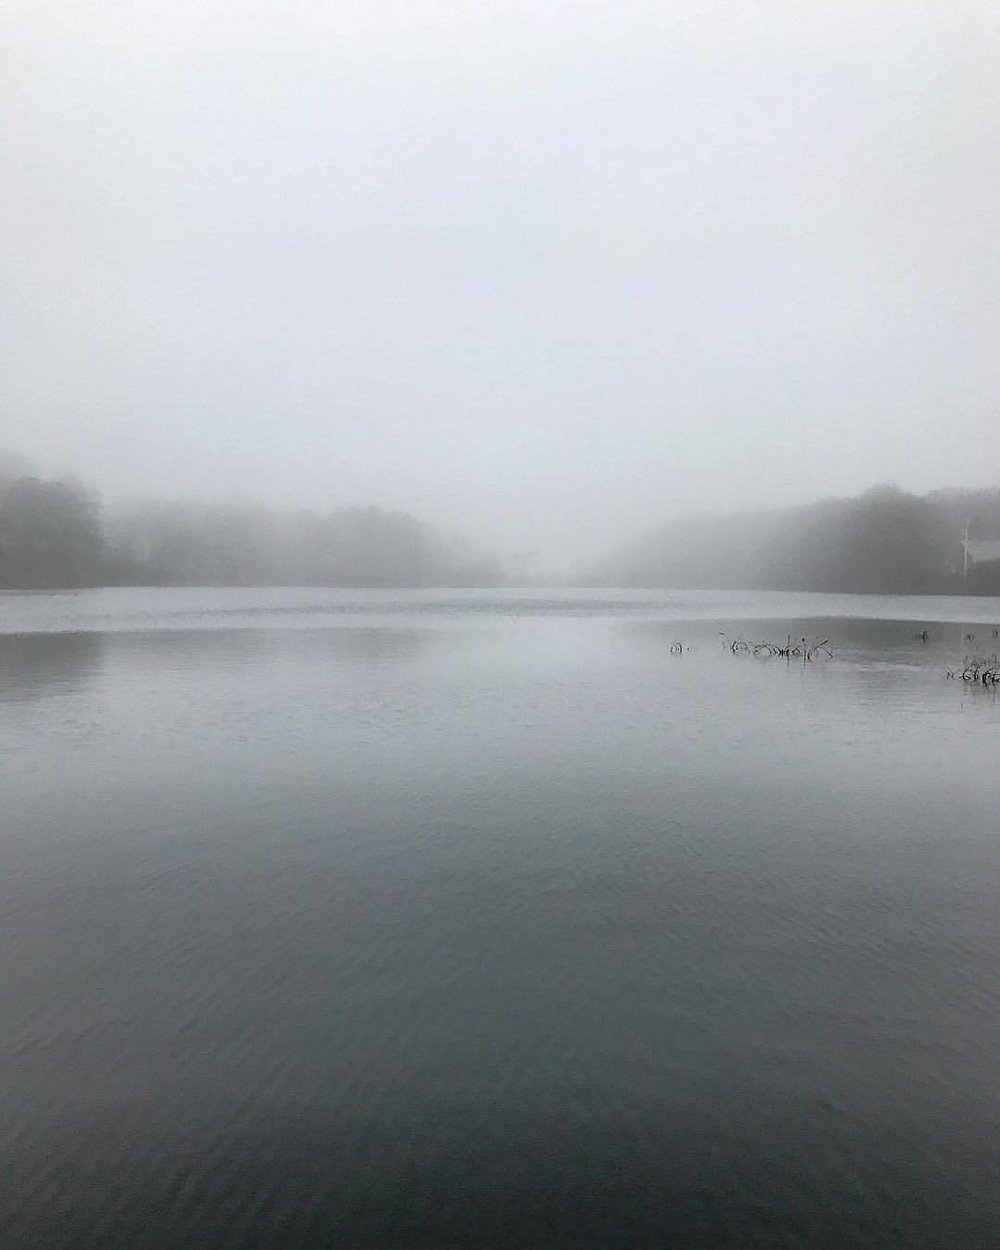 Fog.  -  #massachusetts #capecod #wintermedicine  (at Osterville, Massachusetts)